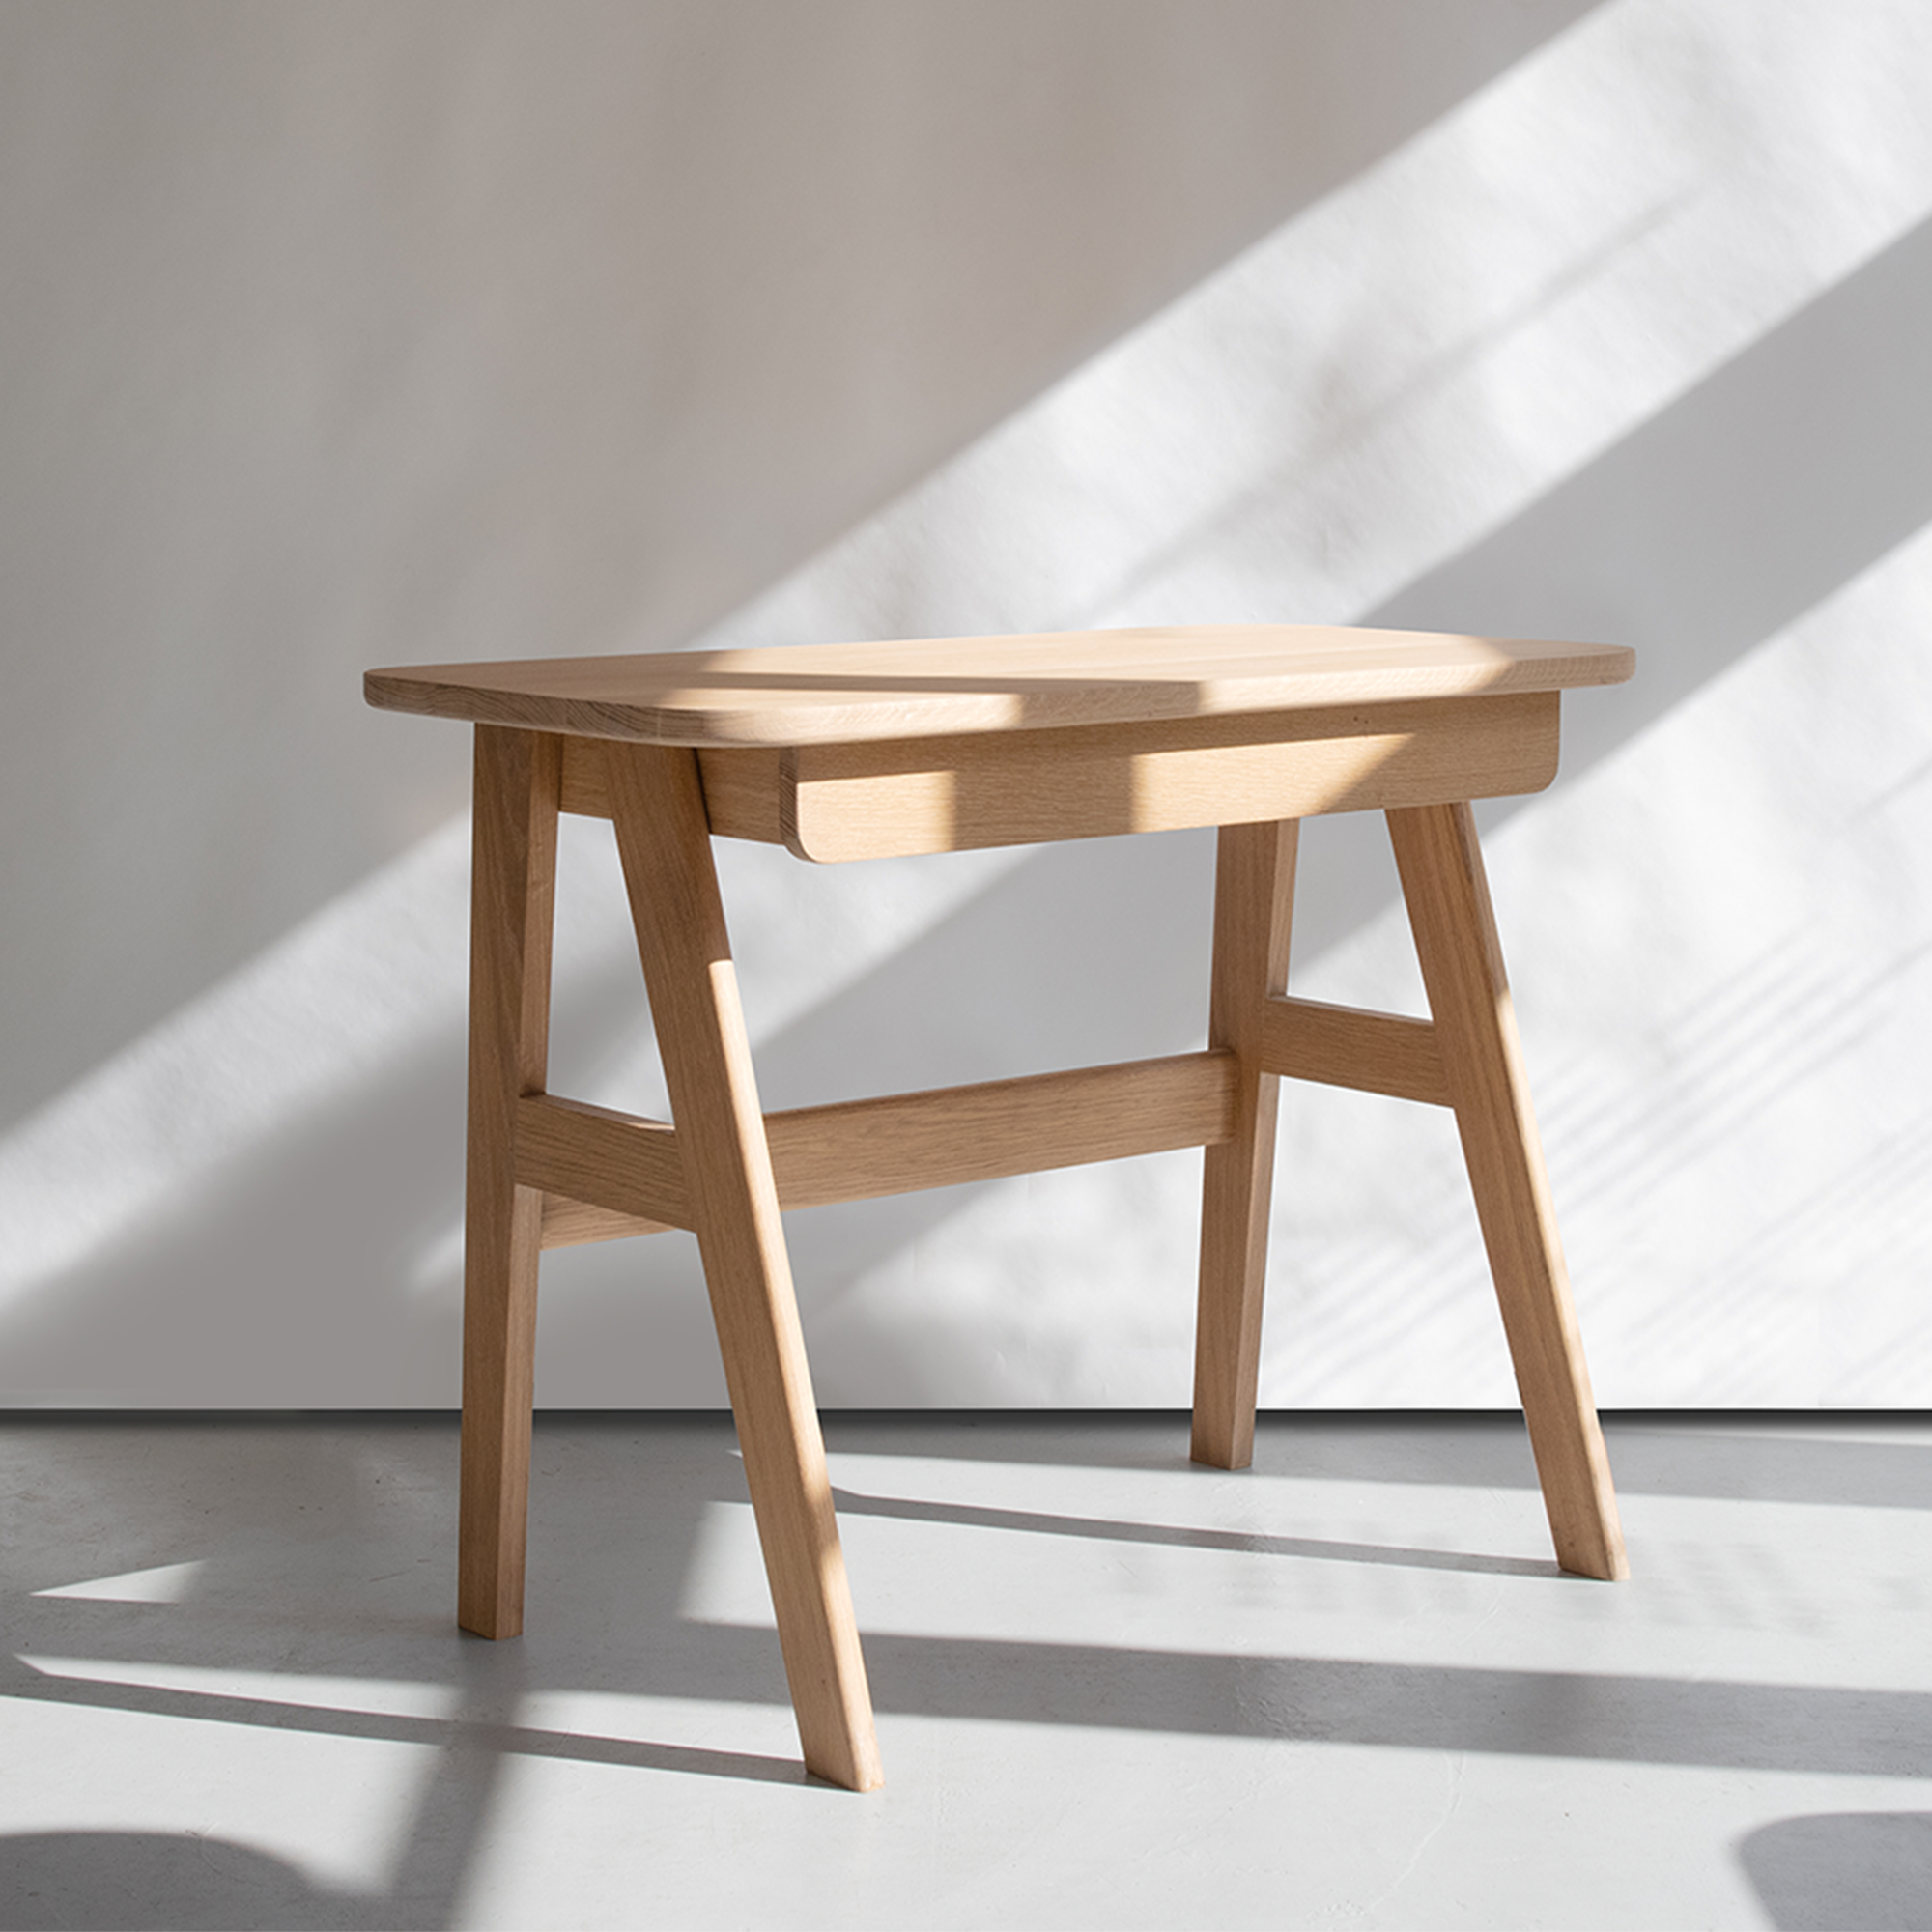 Kirkwood Writing Desk in Oak